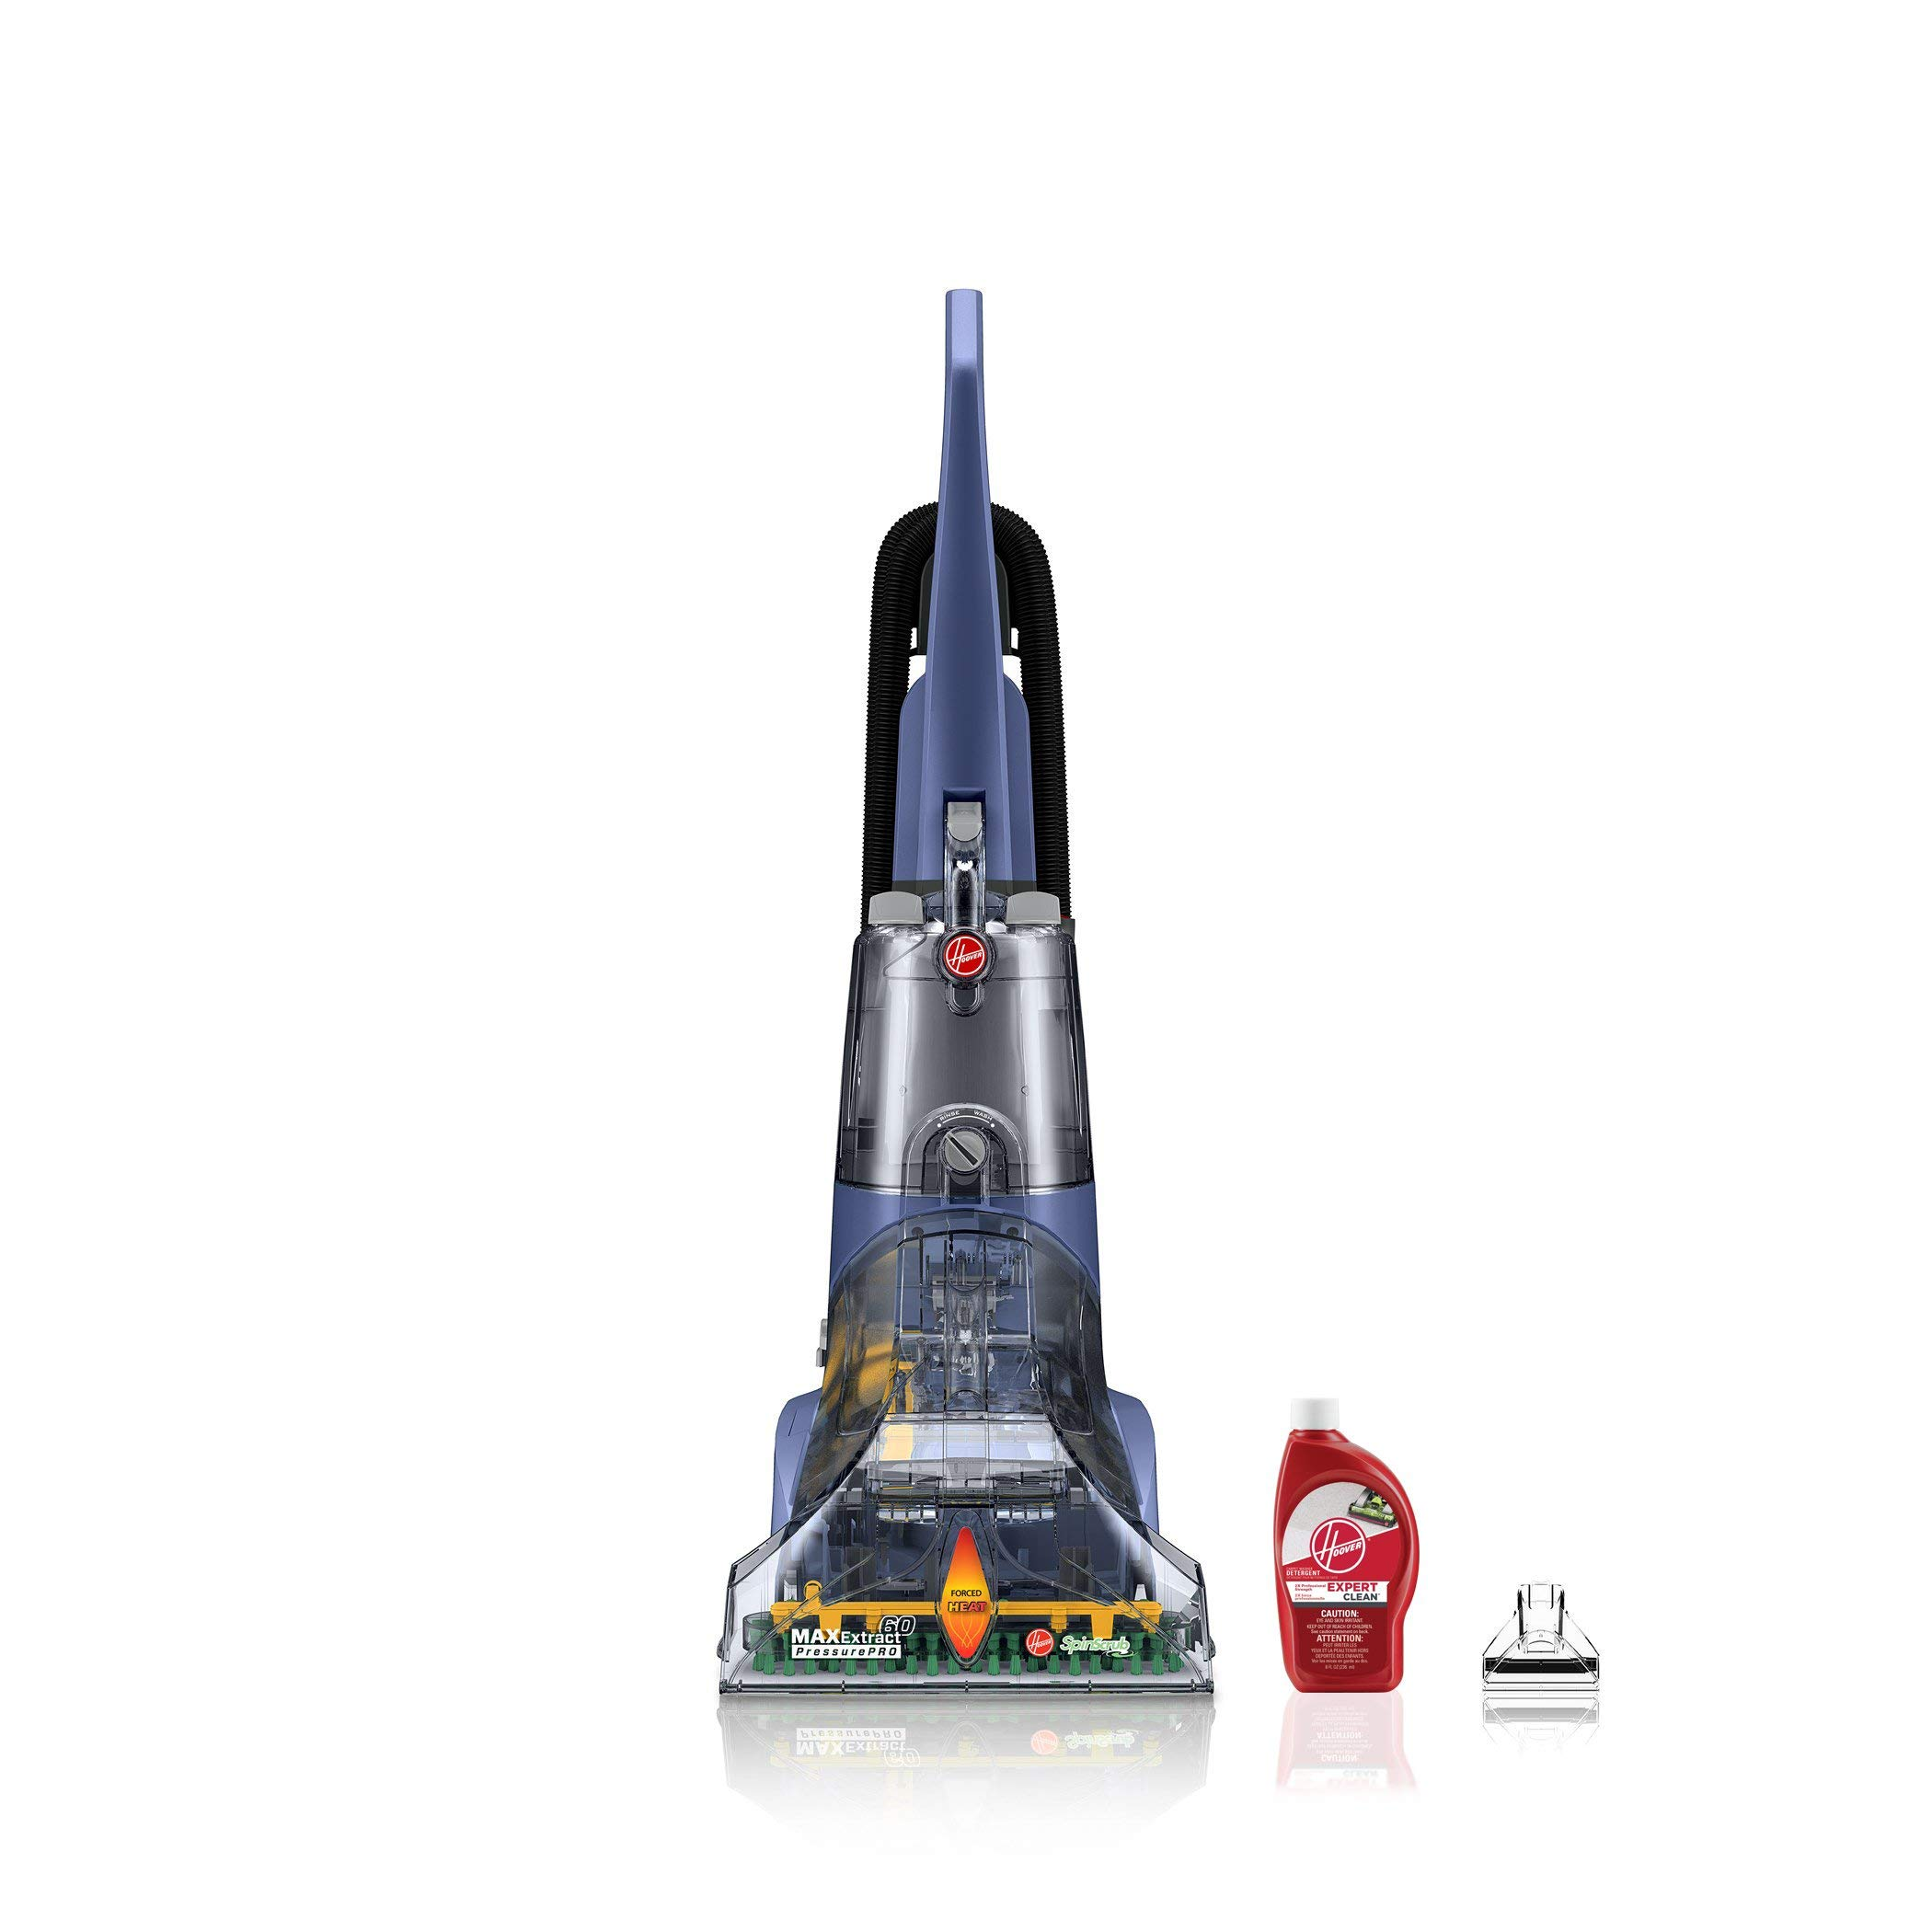 Hoover Max Extract 60 Pressure Pro Carpet Deep Cleaner, FH50220 (Renewed)